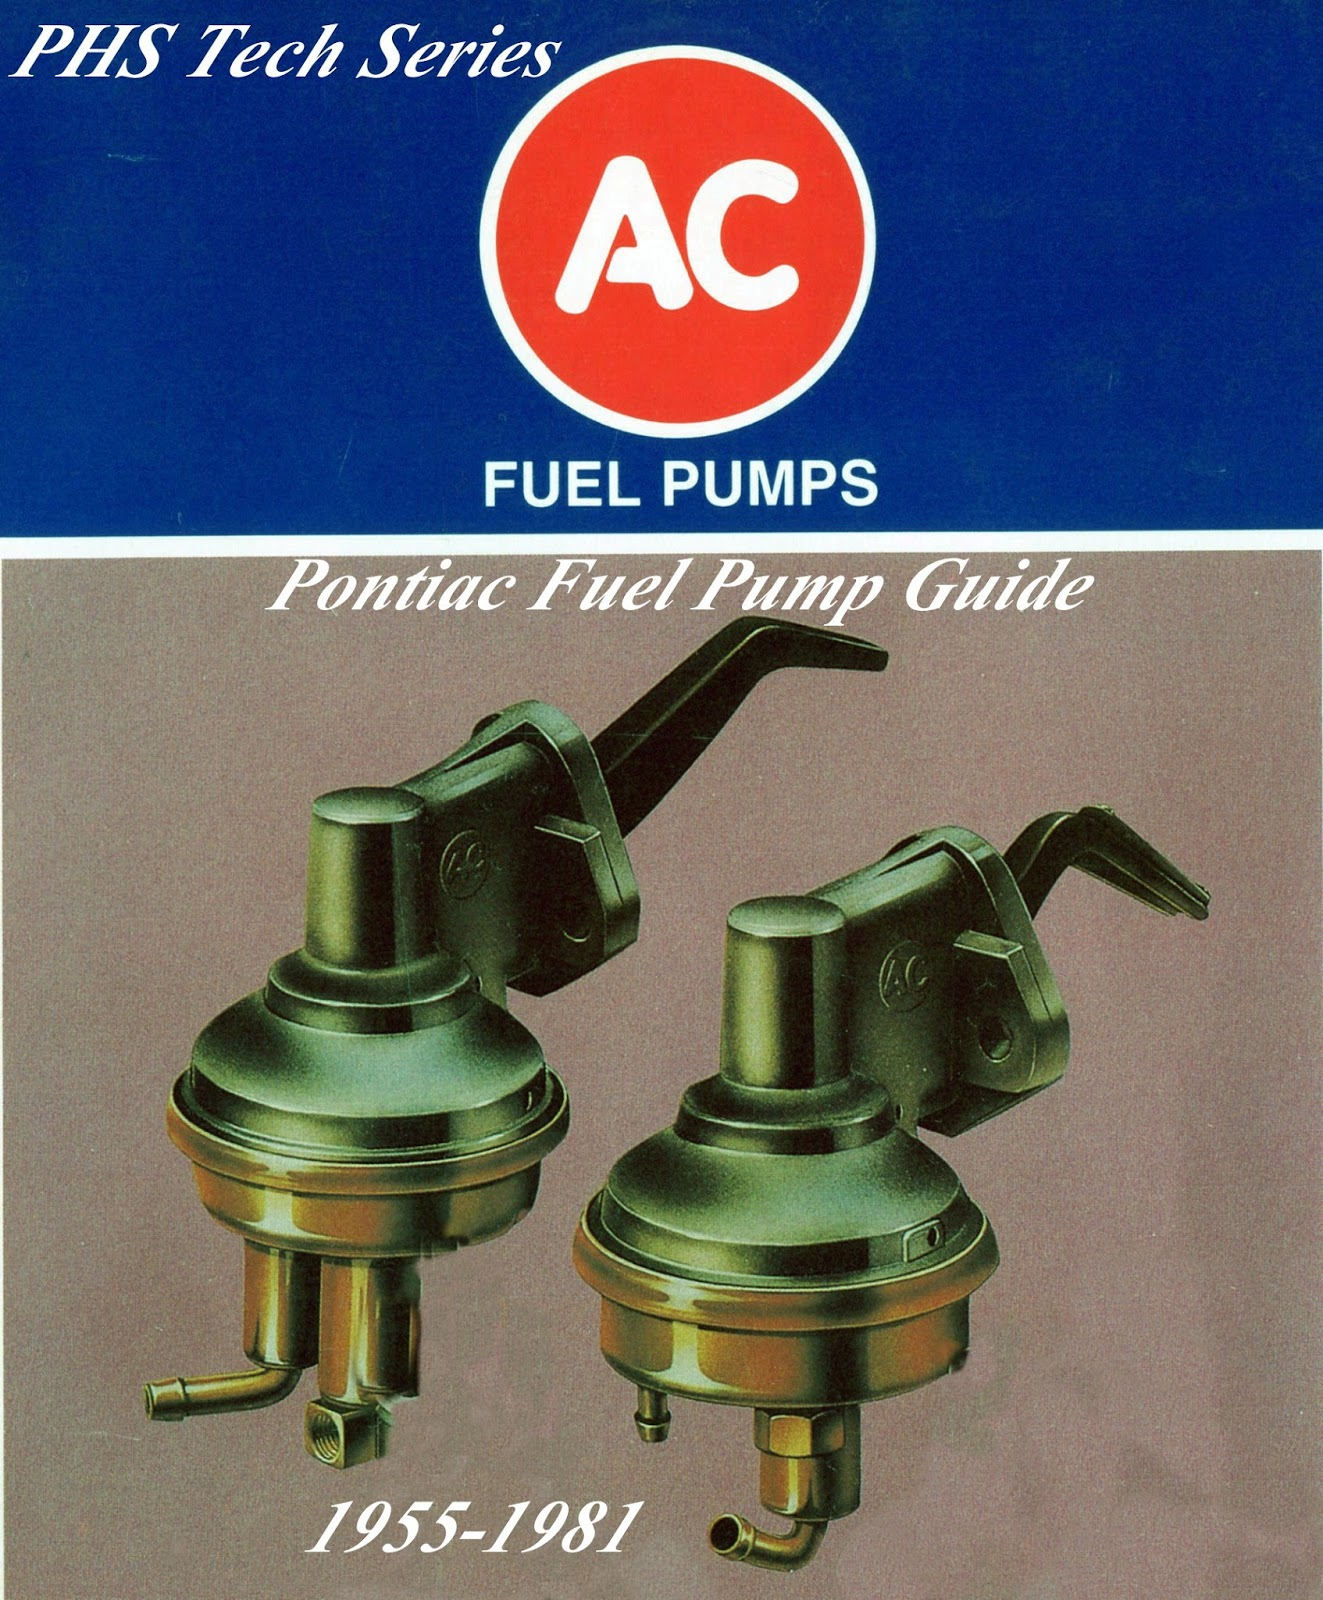 The Delco line of replacement parts was one of the large sources of OEM  style replacement fuel pumps for GM cars in the 1980s and 1990s.